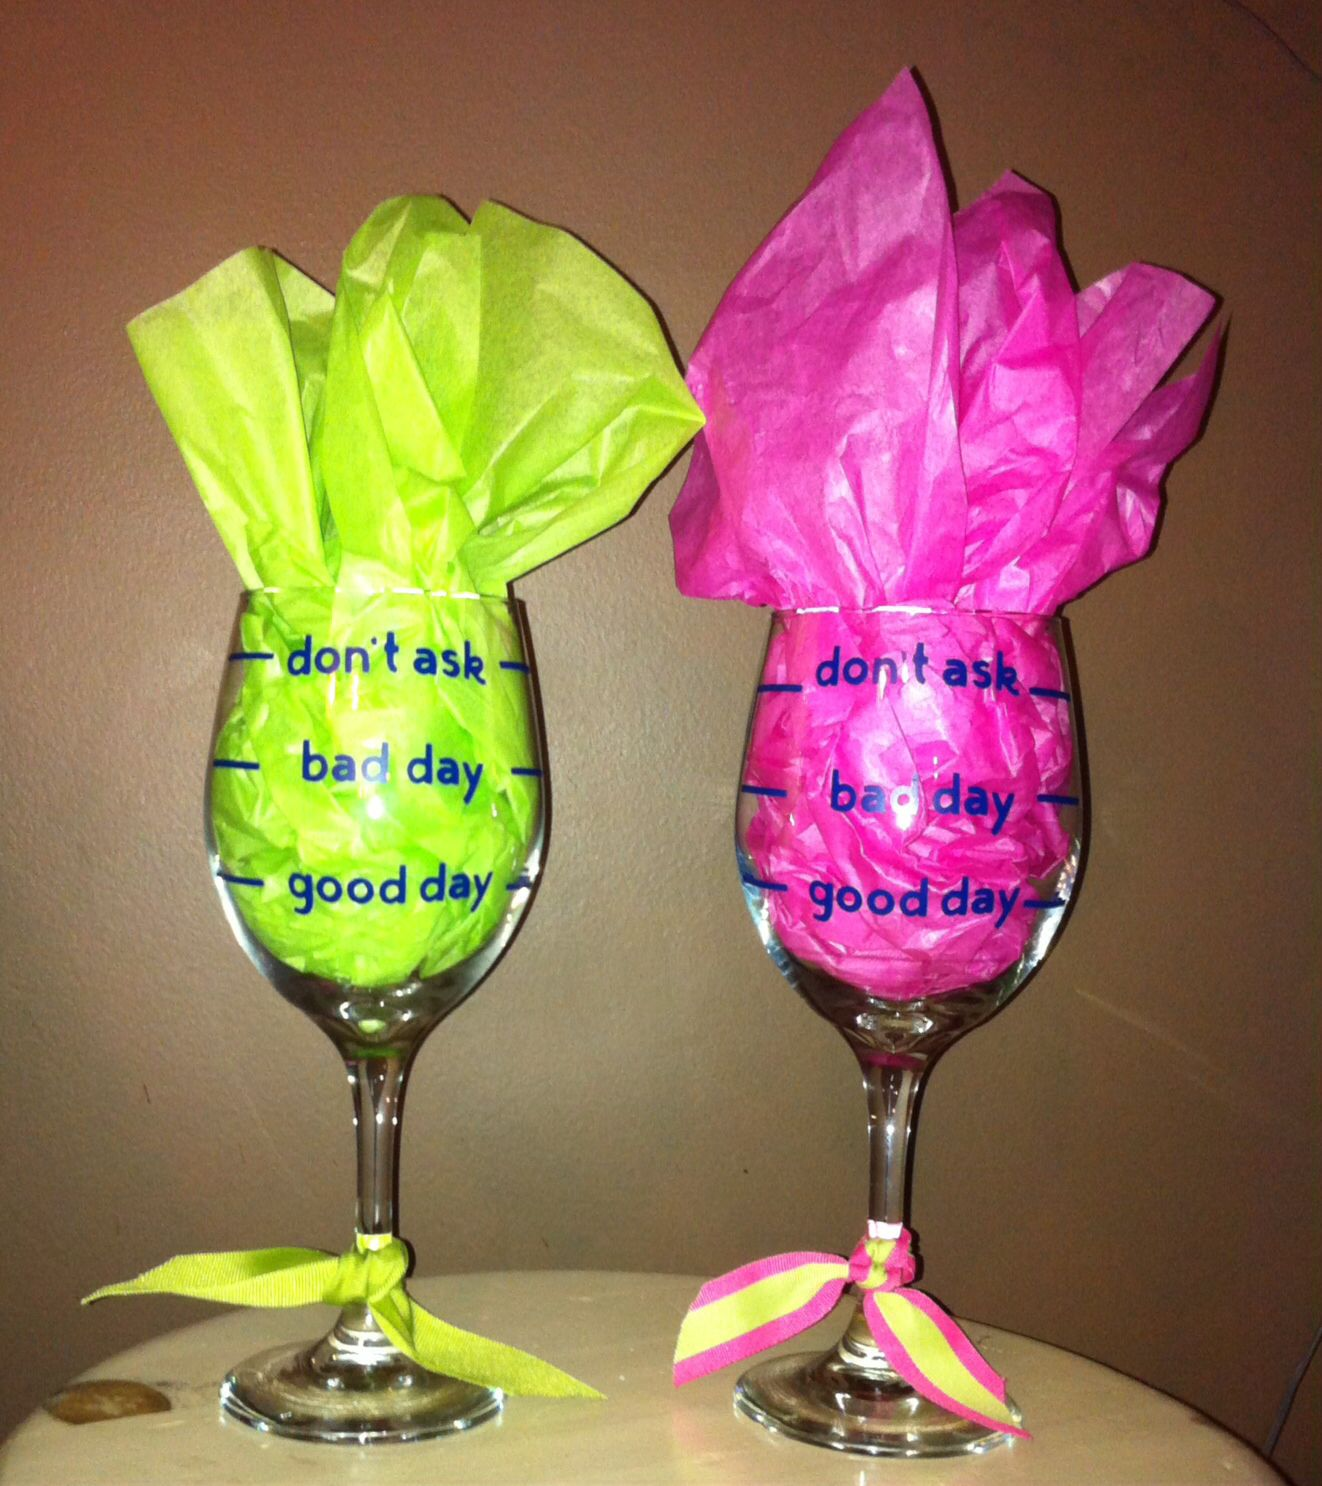 Vinyl lettering decals for crafts - Dollar Store Wine Glasses And Vinyl Lettering Using Cricut